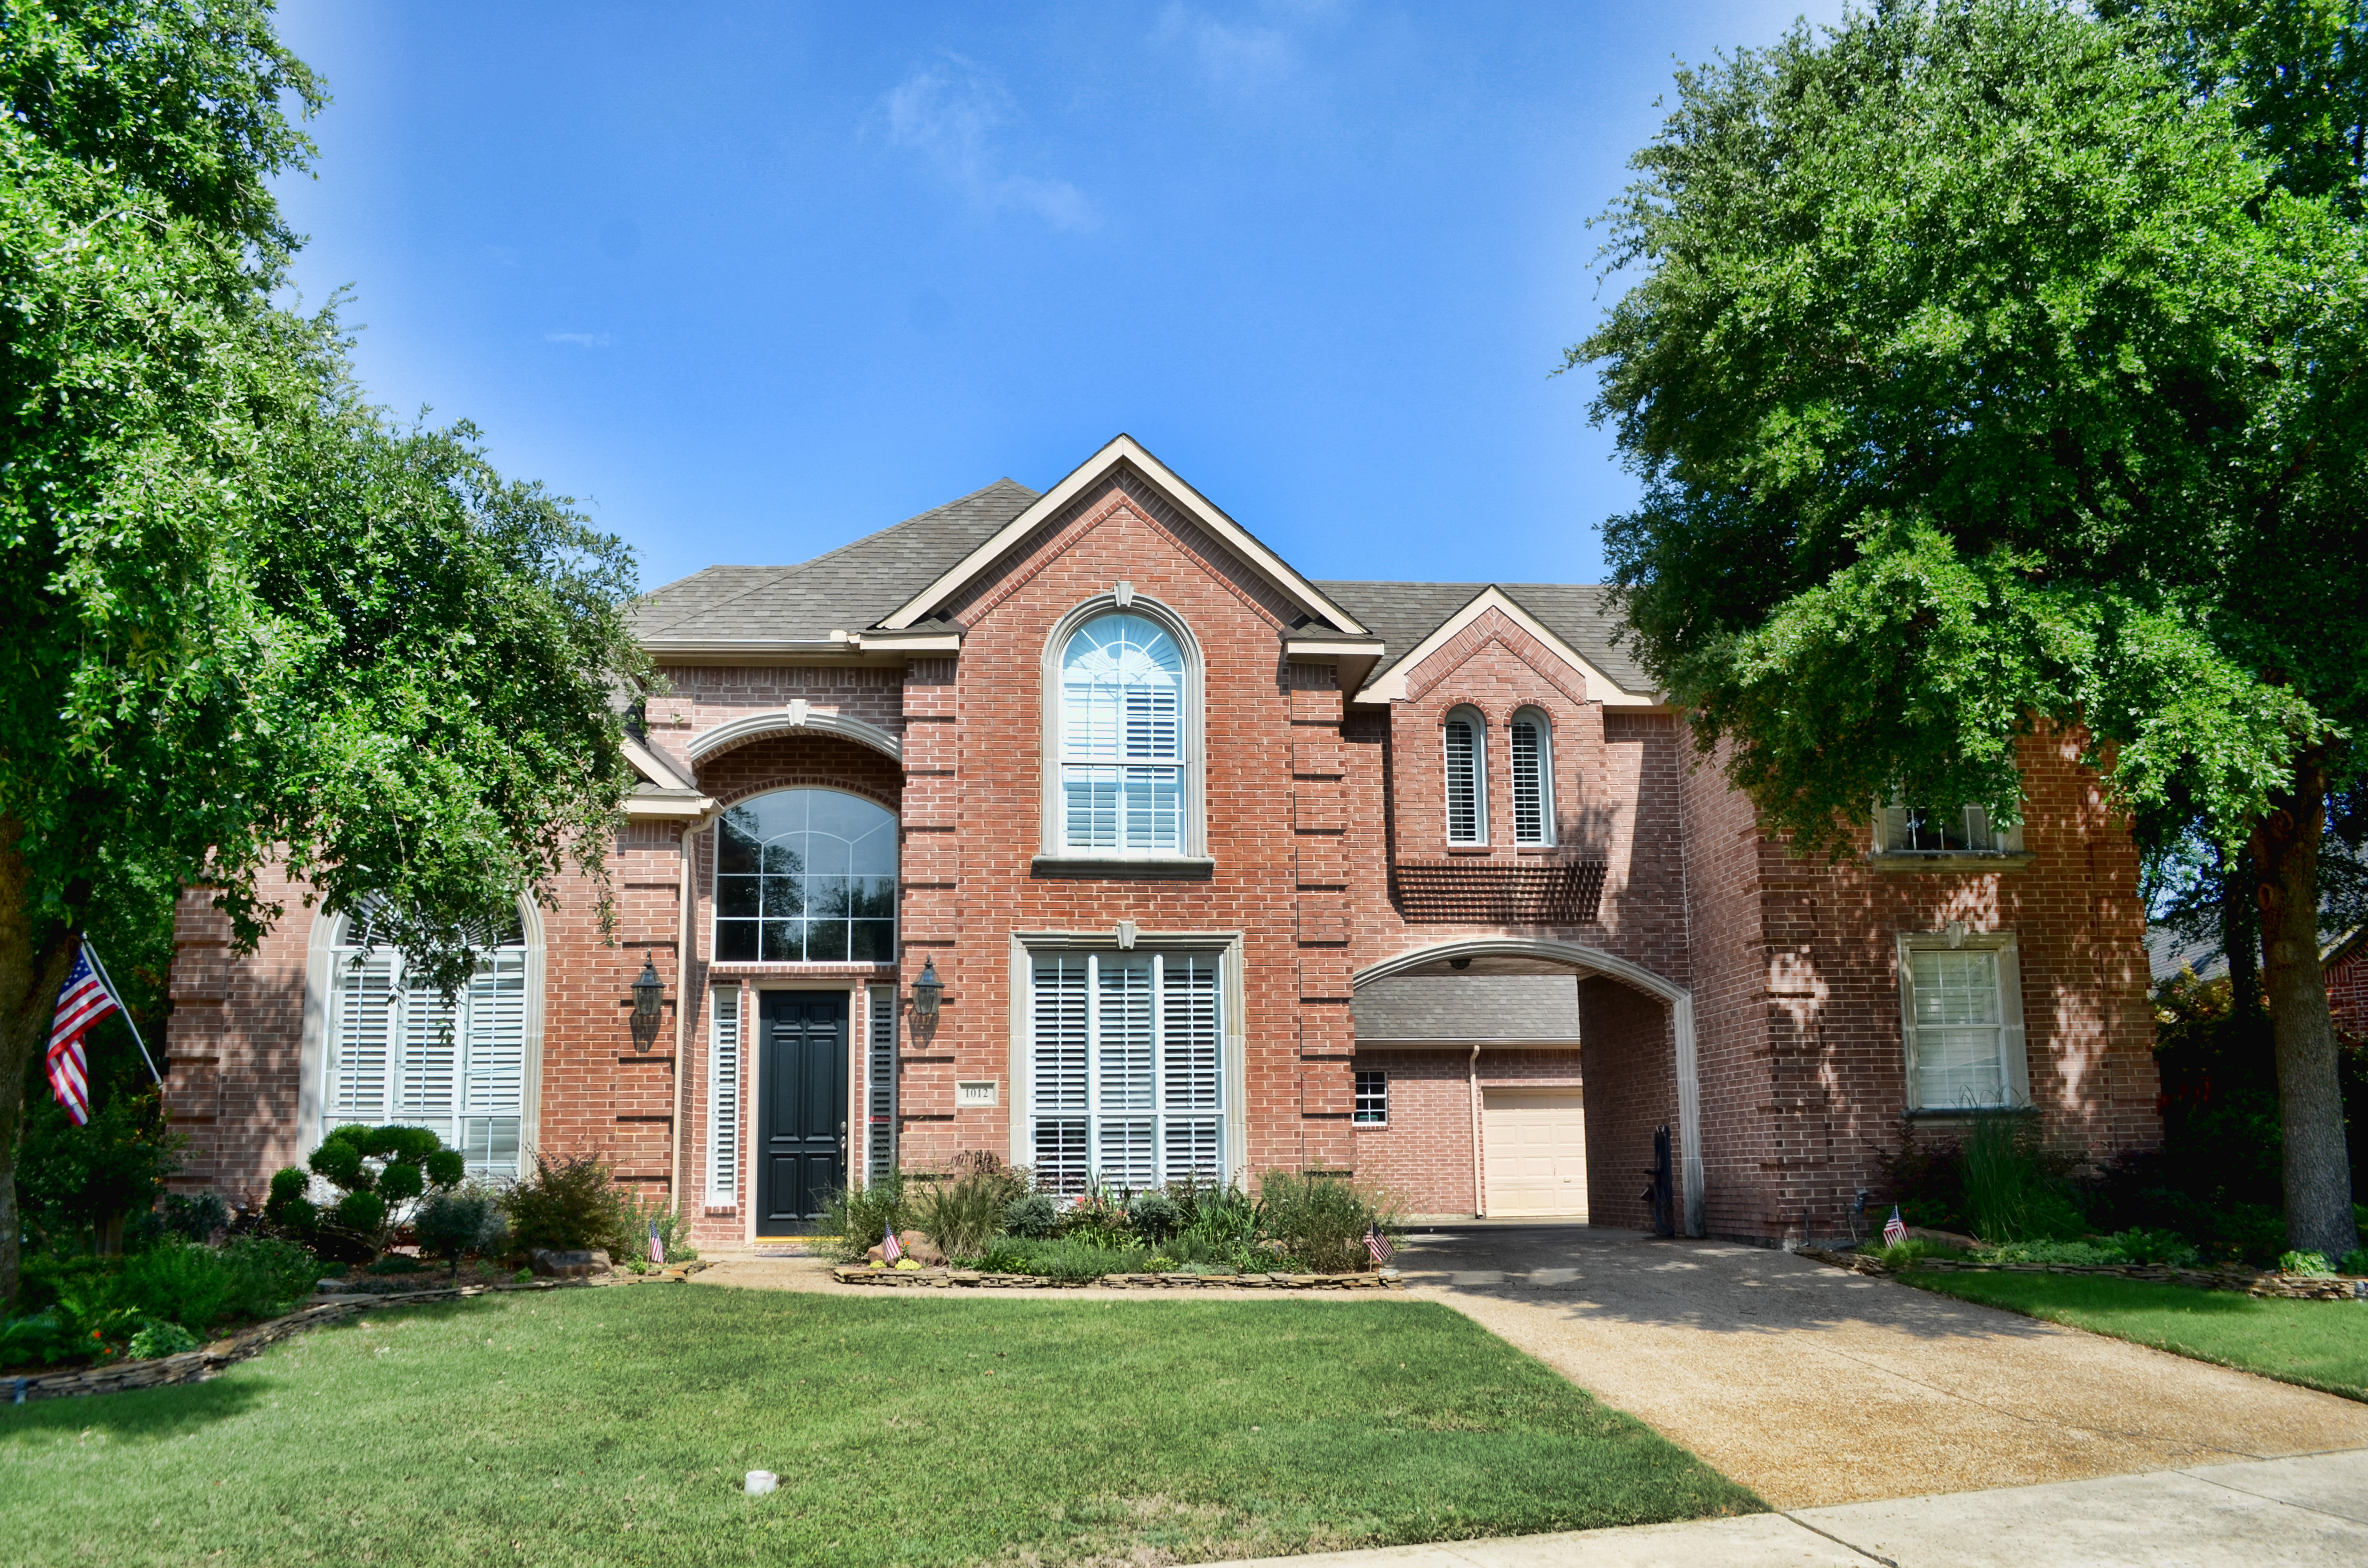 5 Bedroom Homes For Sale In Texas 28 Images Page 38 San Antonio Tx 5 Bedroom Homes For Sale